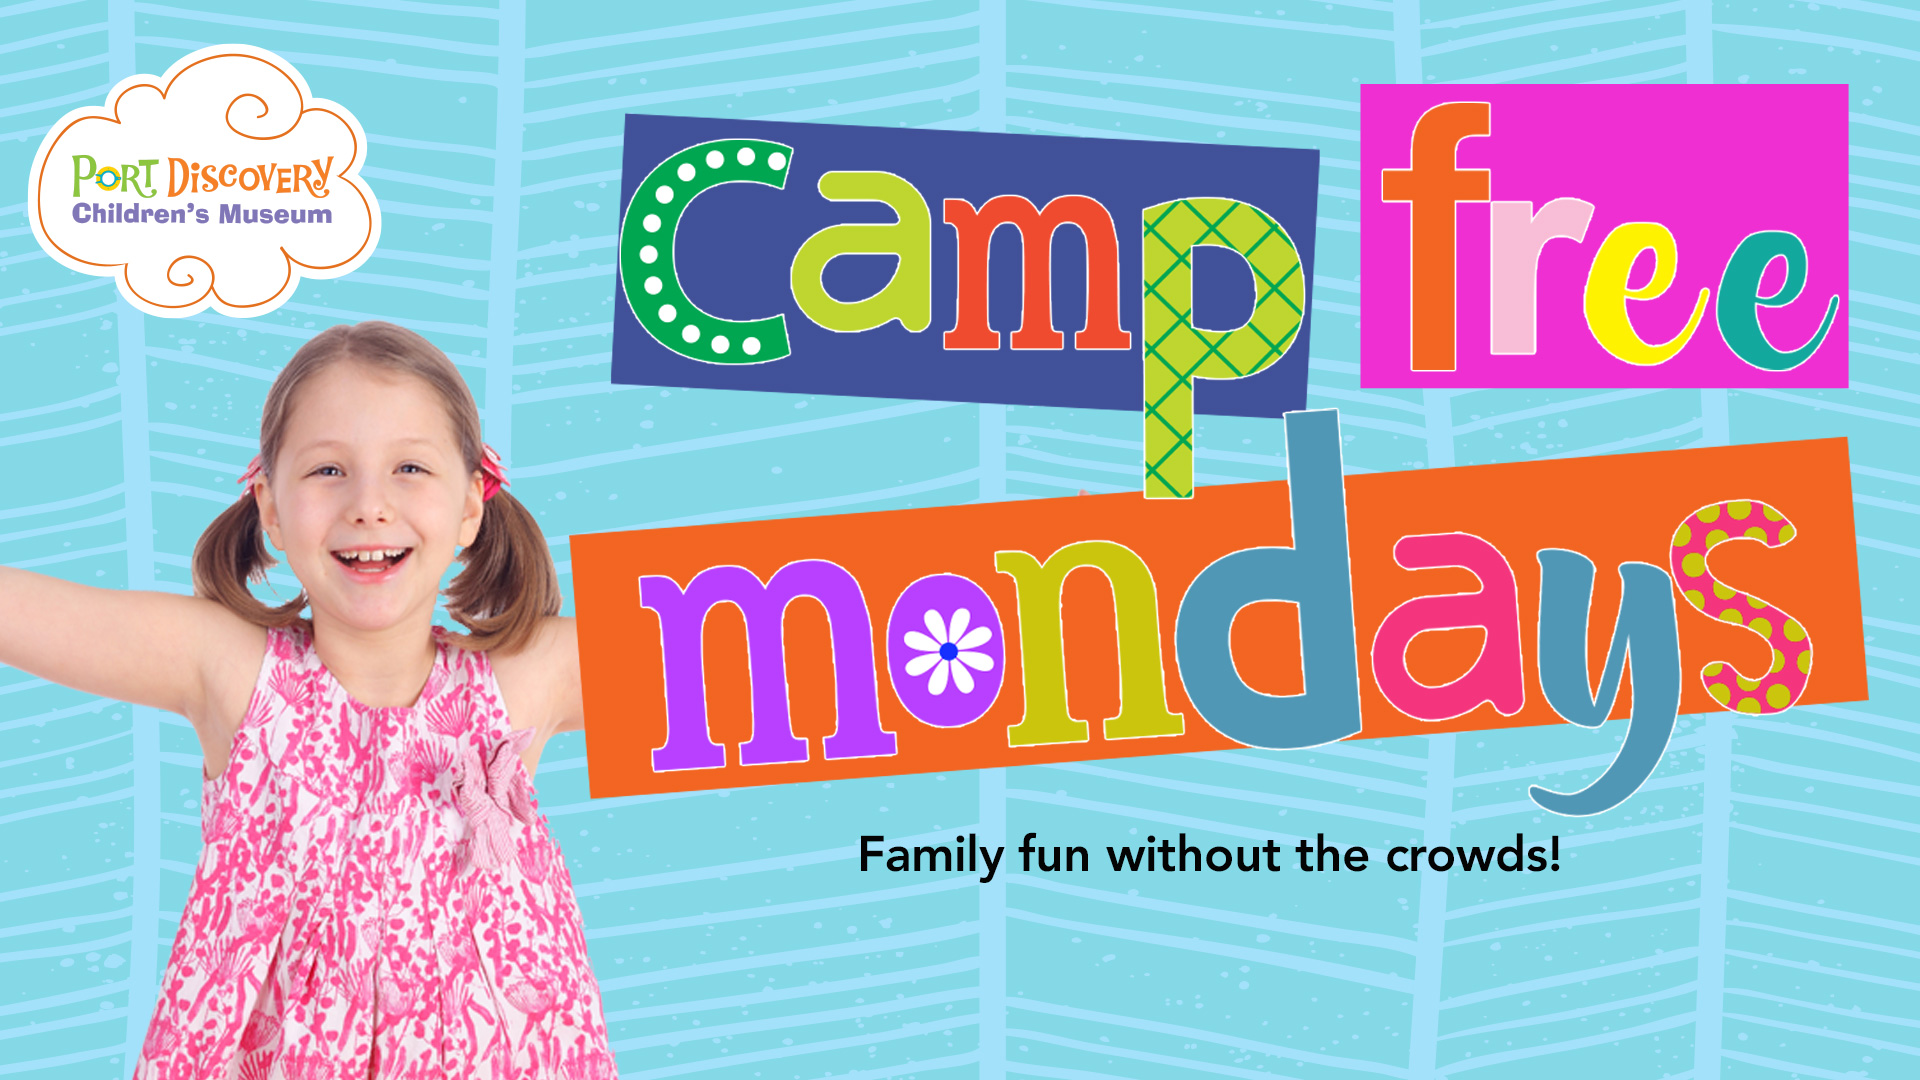 Family Play Monday - Mondays at Port Discovery!